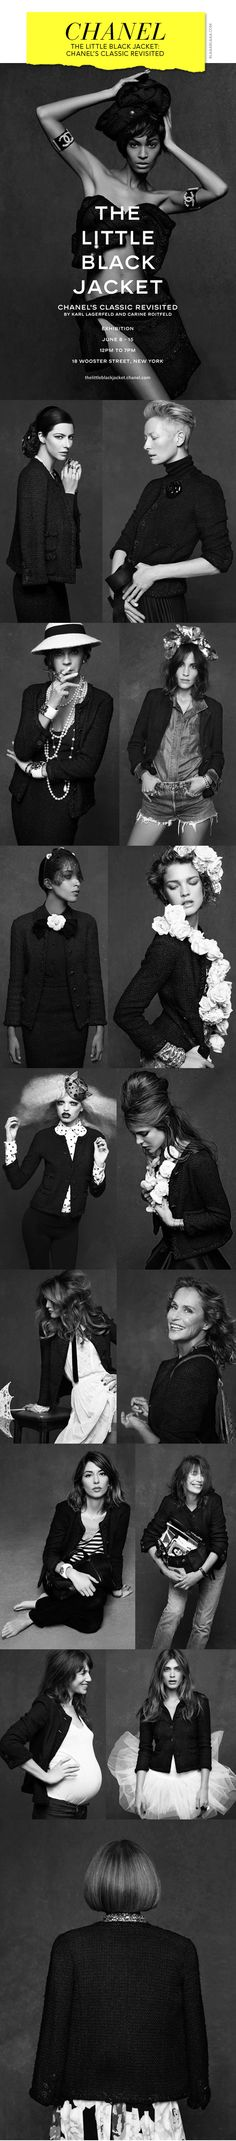 e7009de6164e9f The Little Black Jacket: Chanel's Classic Revisited, by Karl Lagerfeld and  Carine Roitfeld Jacke